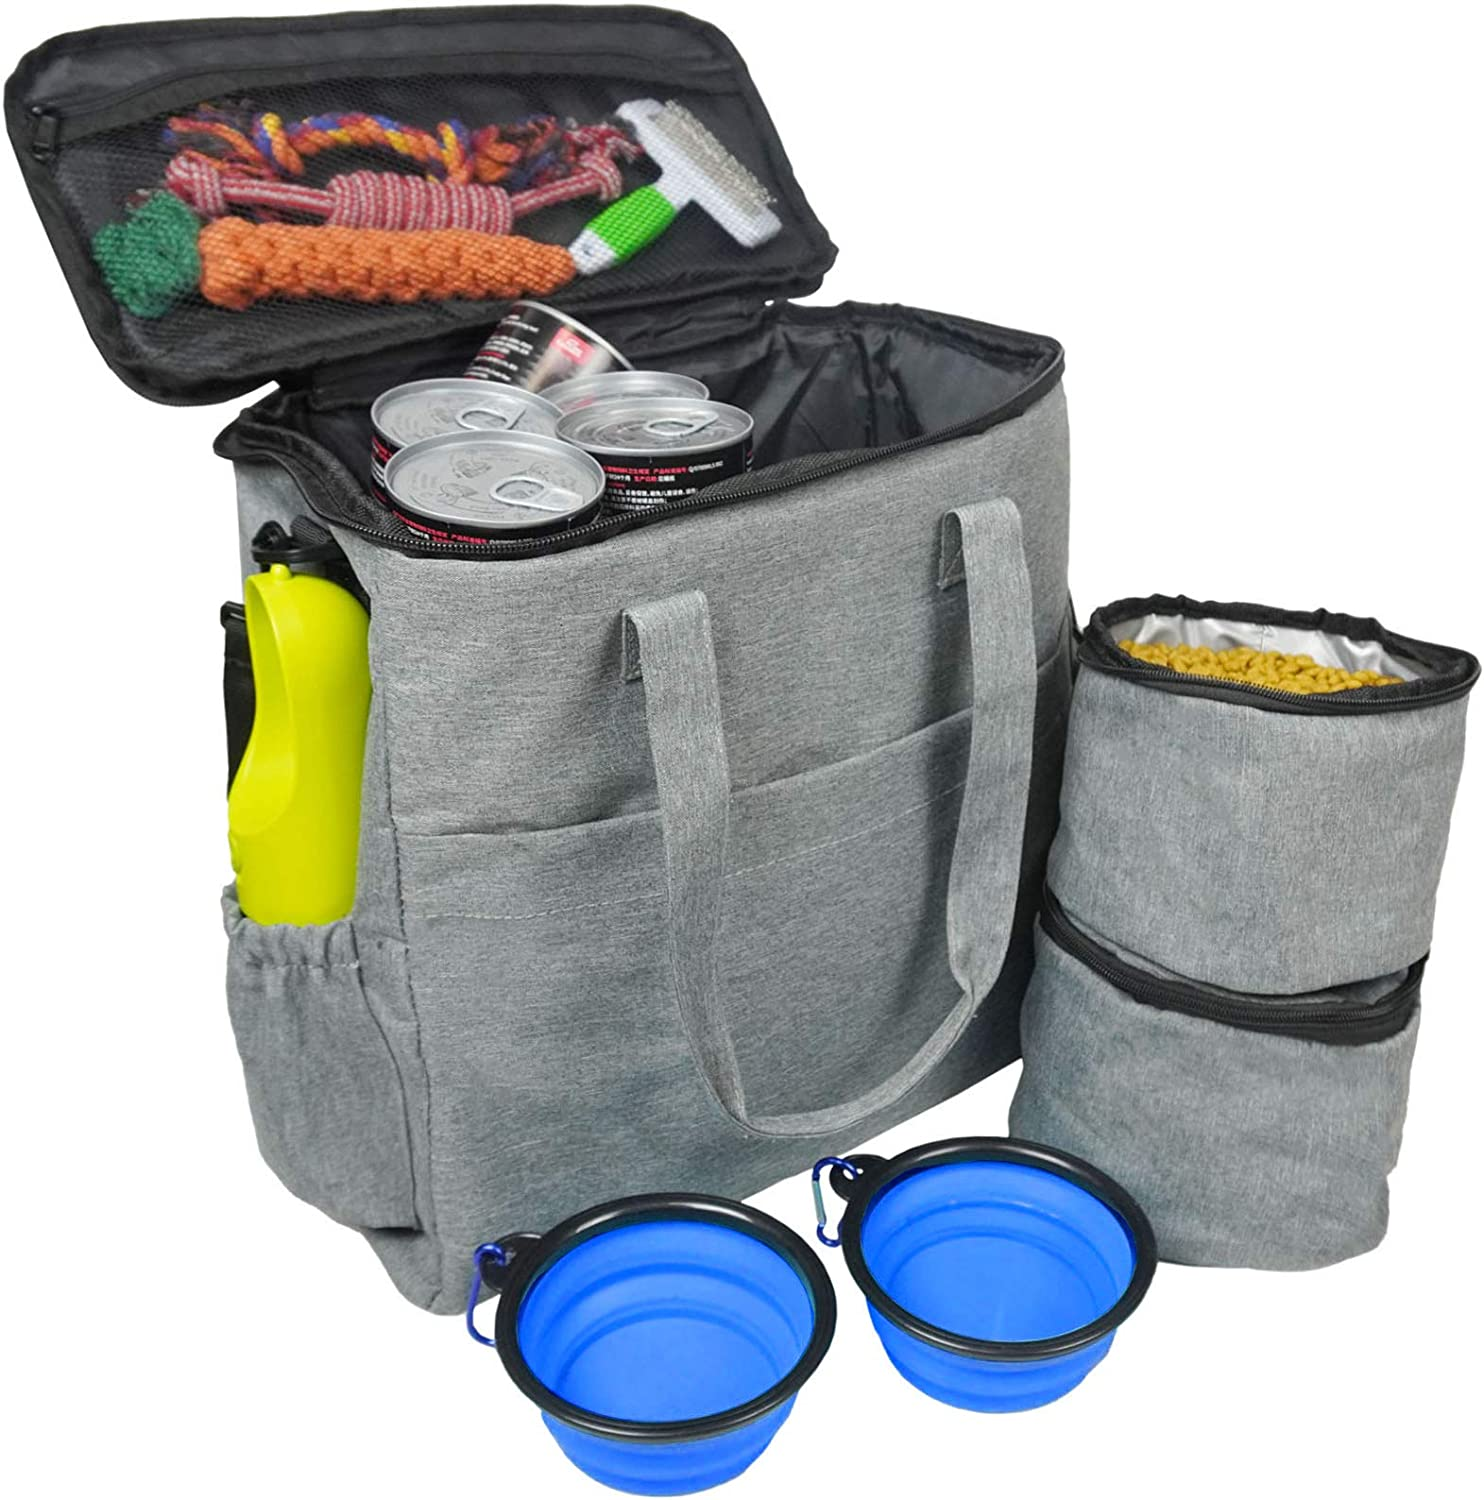 maxpama Dog Travel Bag - Weekend Tote Organizer Bag for Pet Travel, Airline Approved - Includes 1X Pet Travel Bag, 2X Food Storage Containers and 2X Collapsible Silicone Dog Bowls - Gray